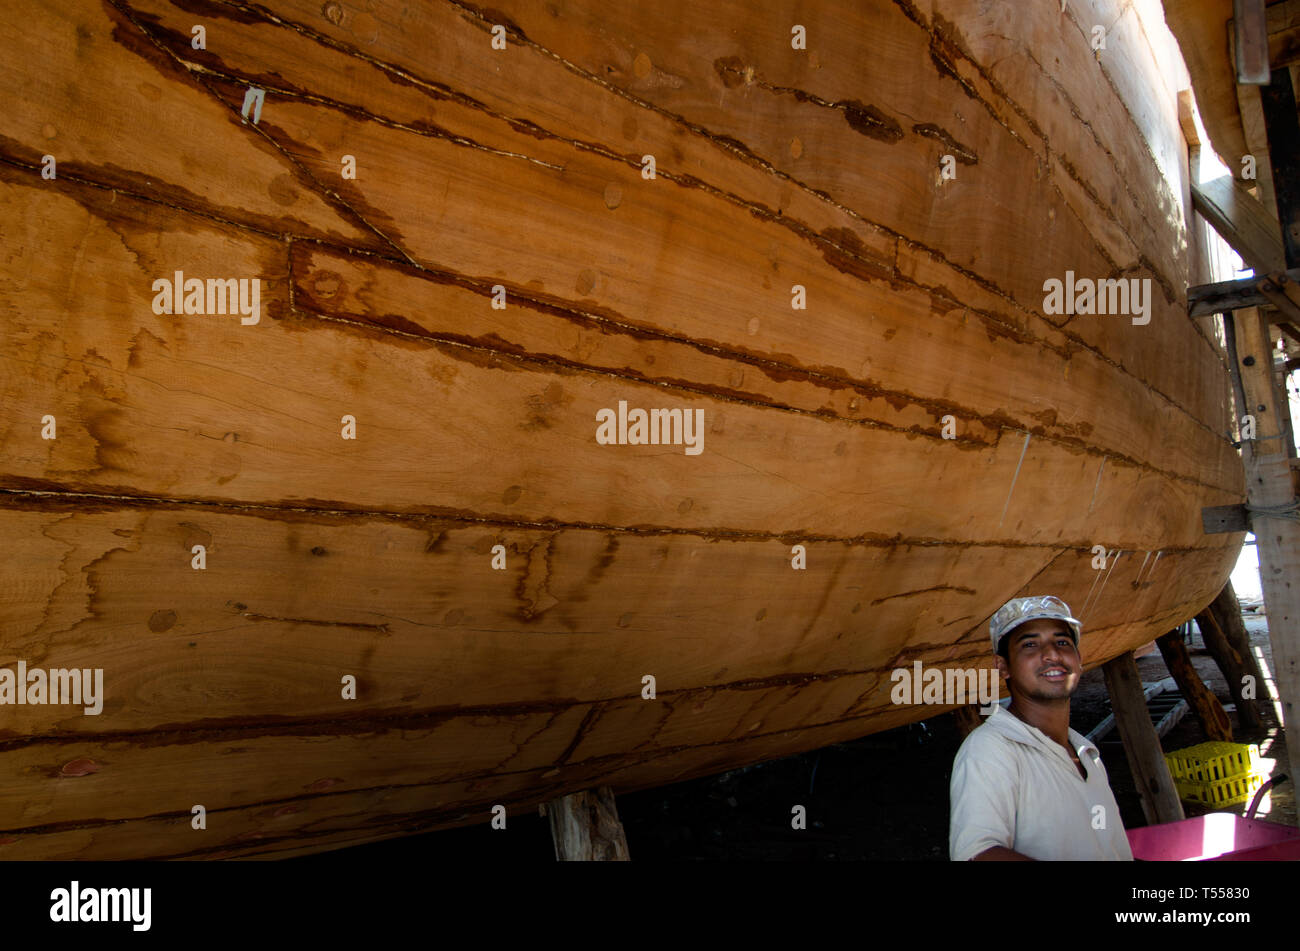 Omani Dhow-building carried out using traditional methods and